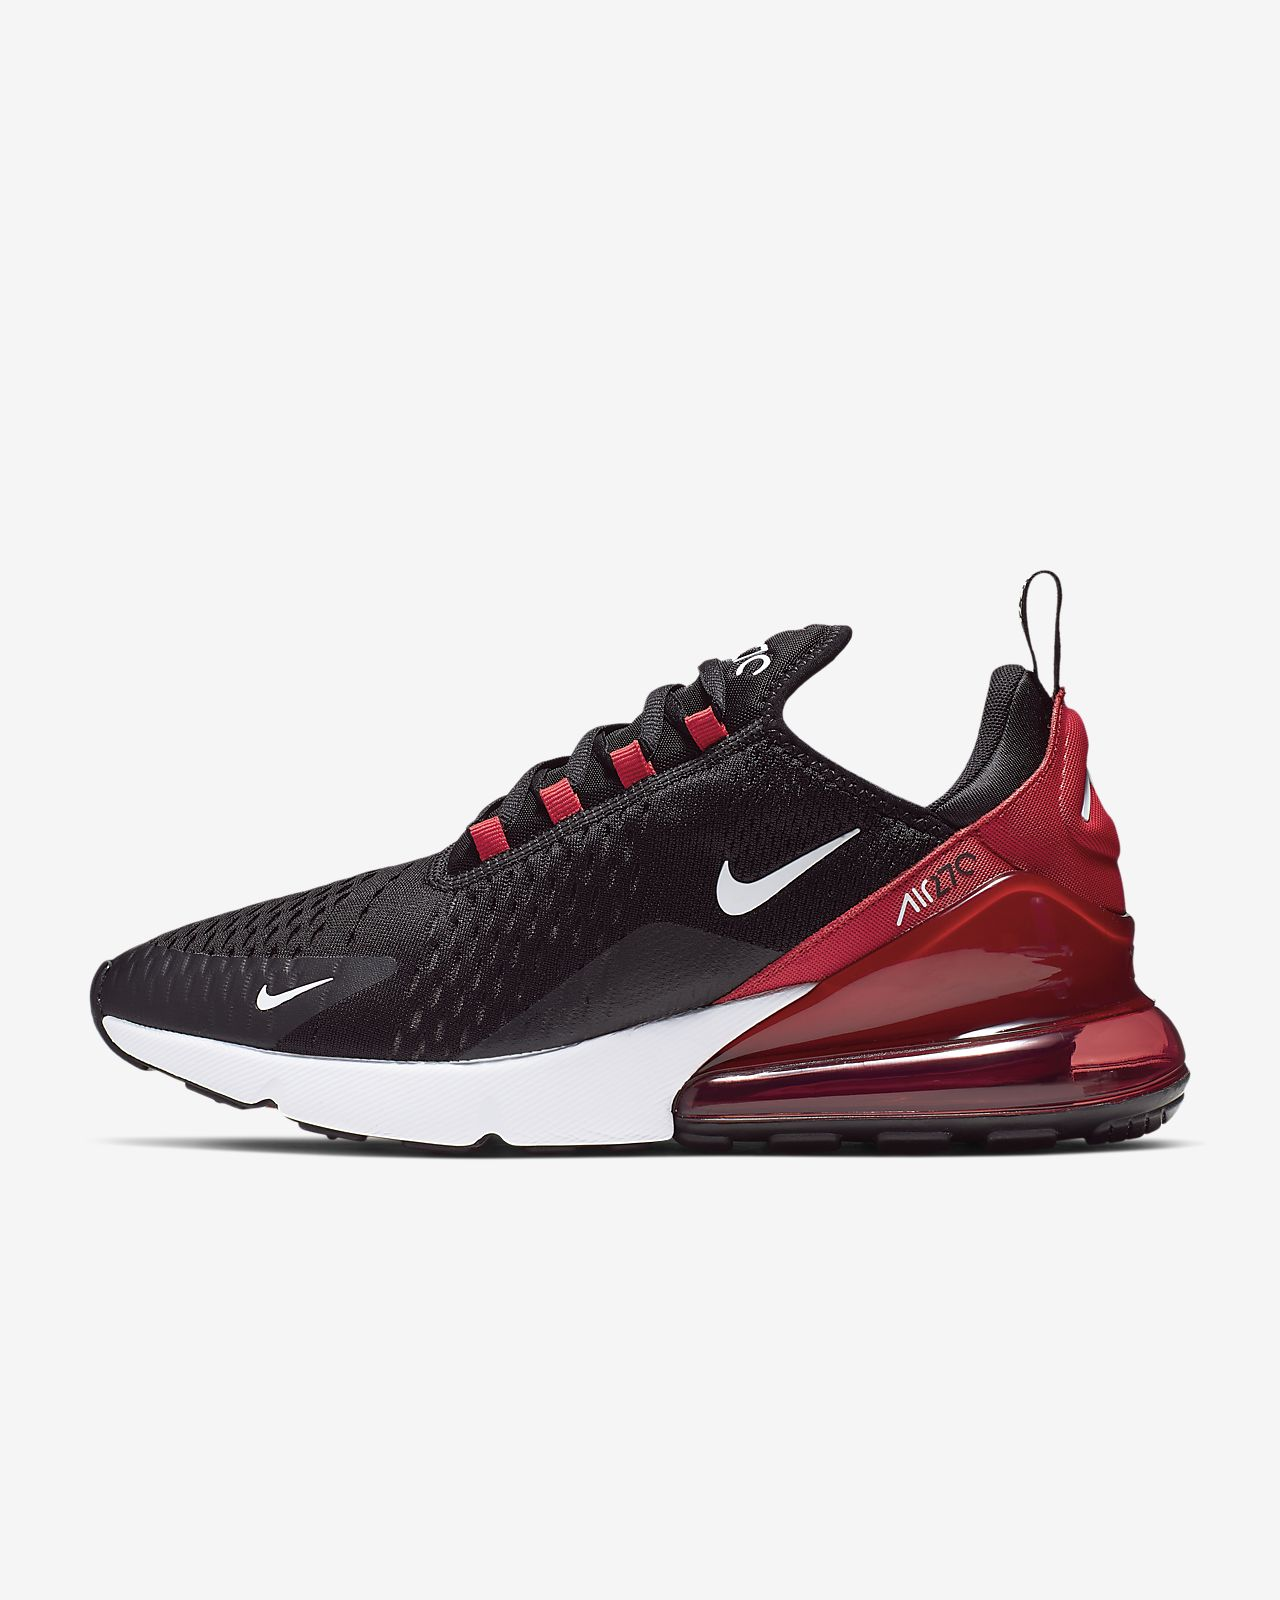 info for 3ff04 1729d Low Resolution Sko Nike Air Max 270 för män Sko Nike Air Max 270 för män